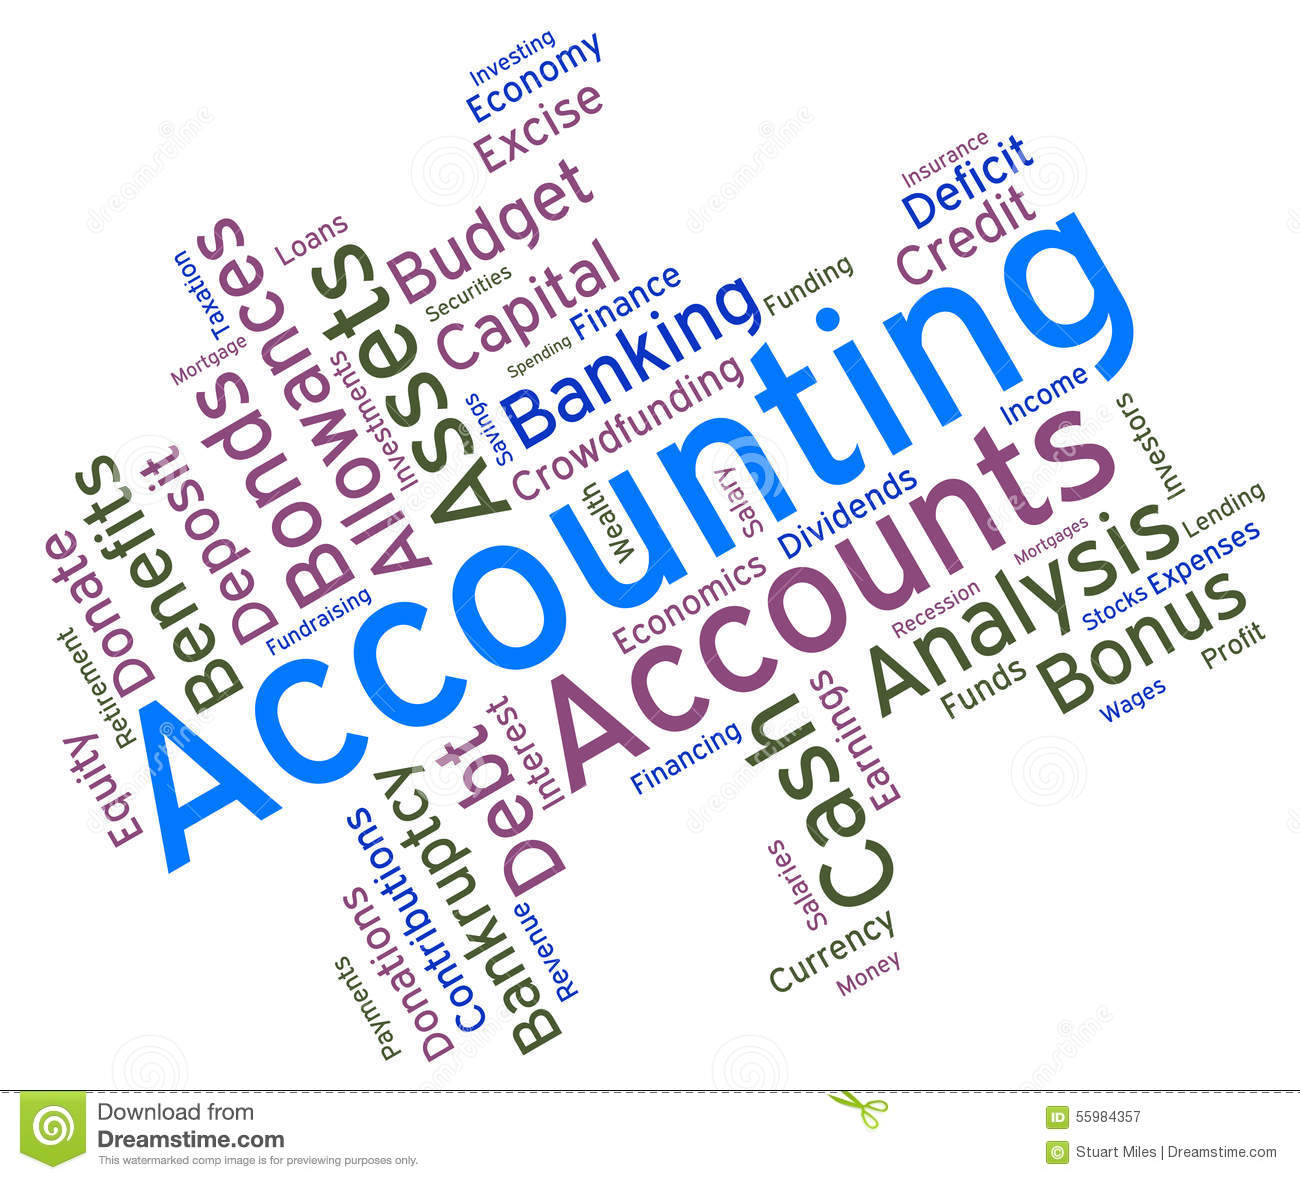 Accounting: Accounting Words Represents Balancing The Books And